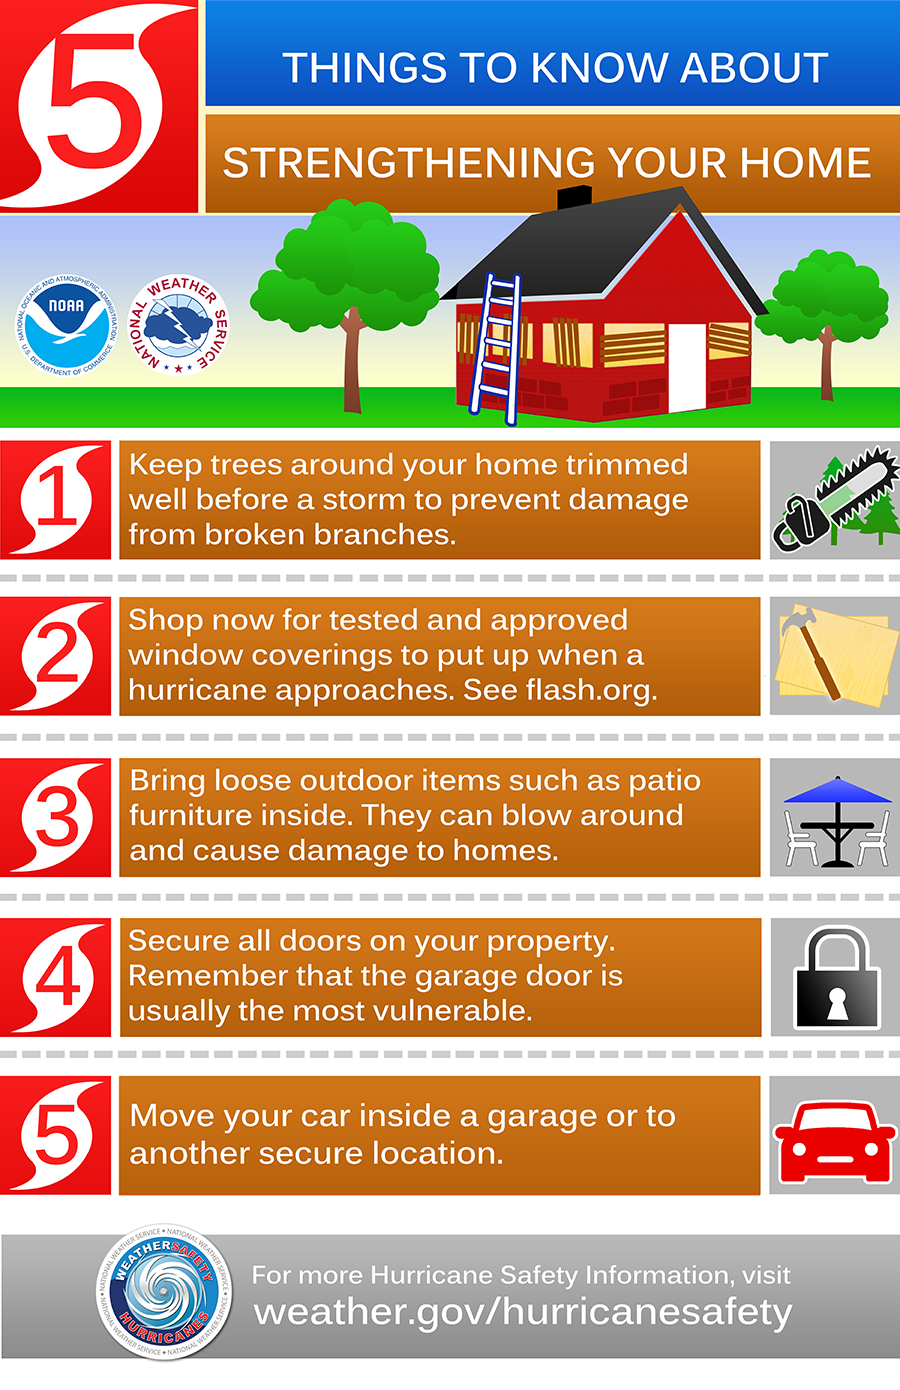 Hurricane Preparedness Week Day 5 Strengthen Your Home